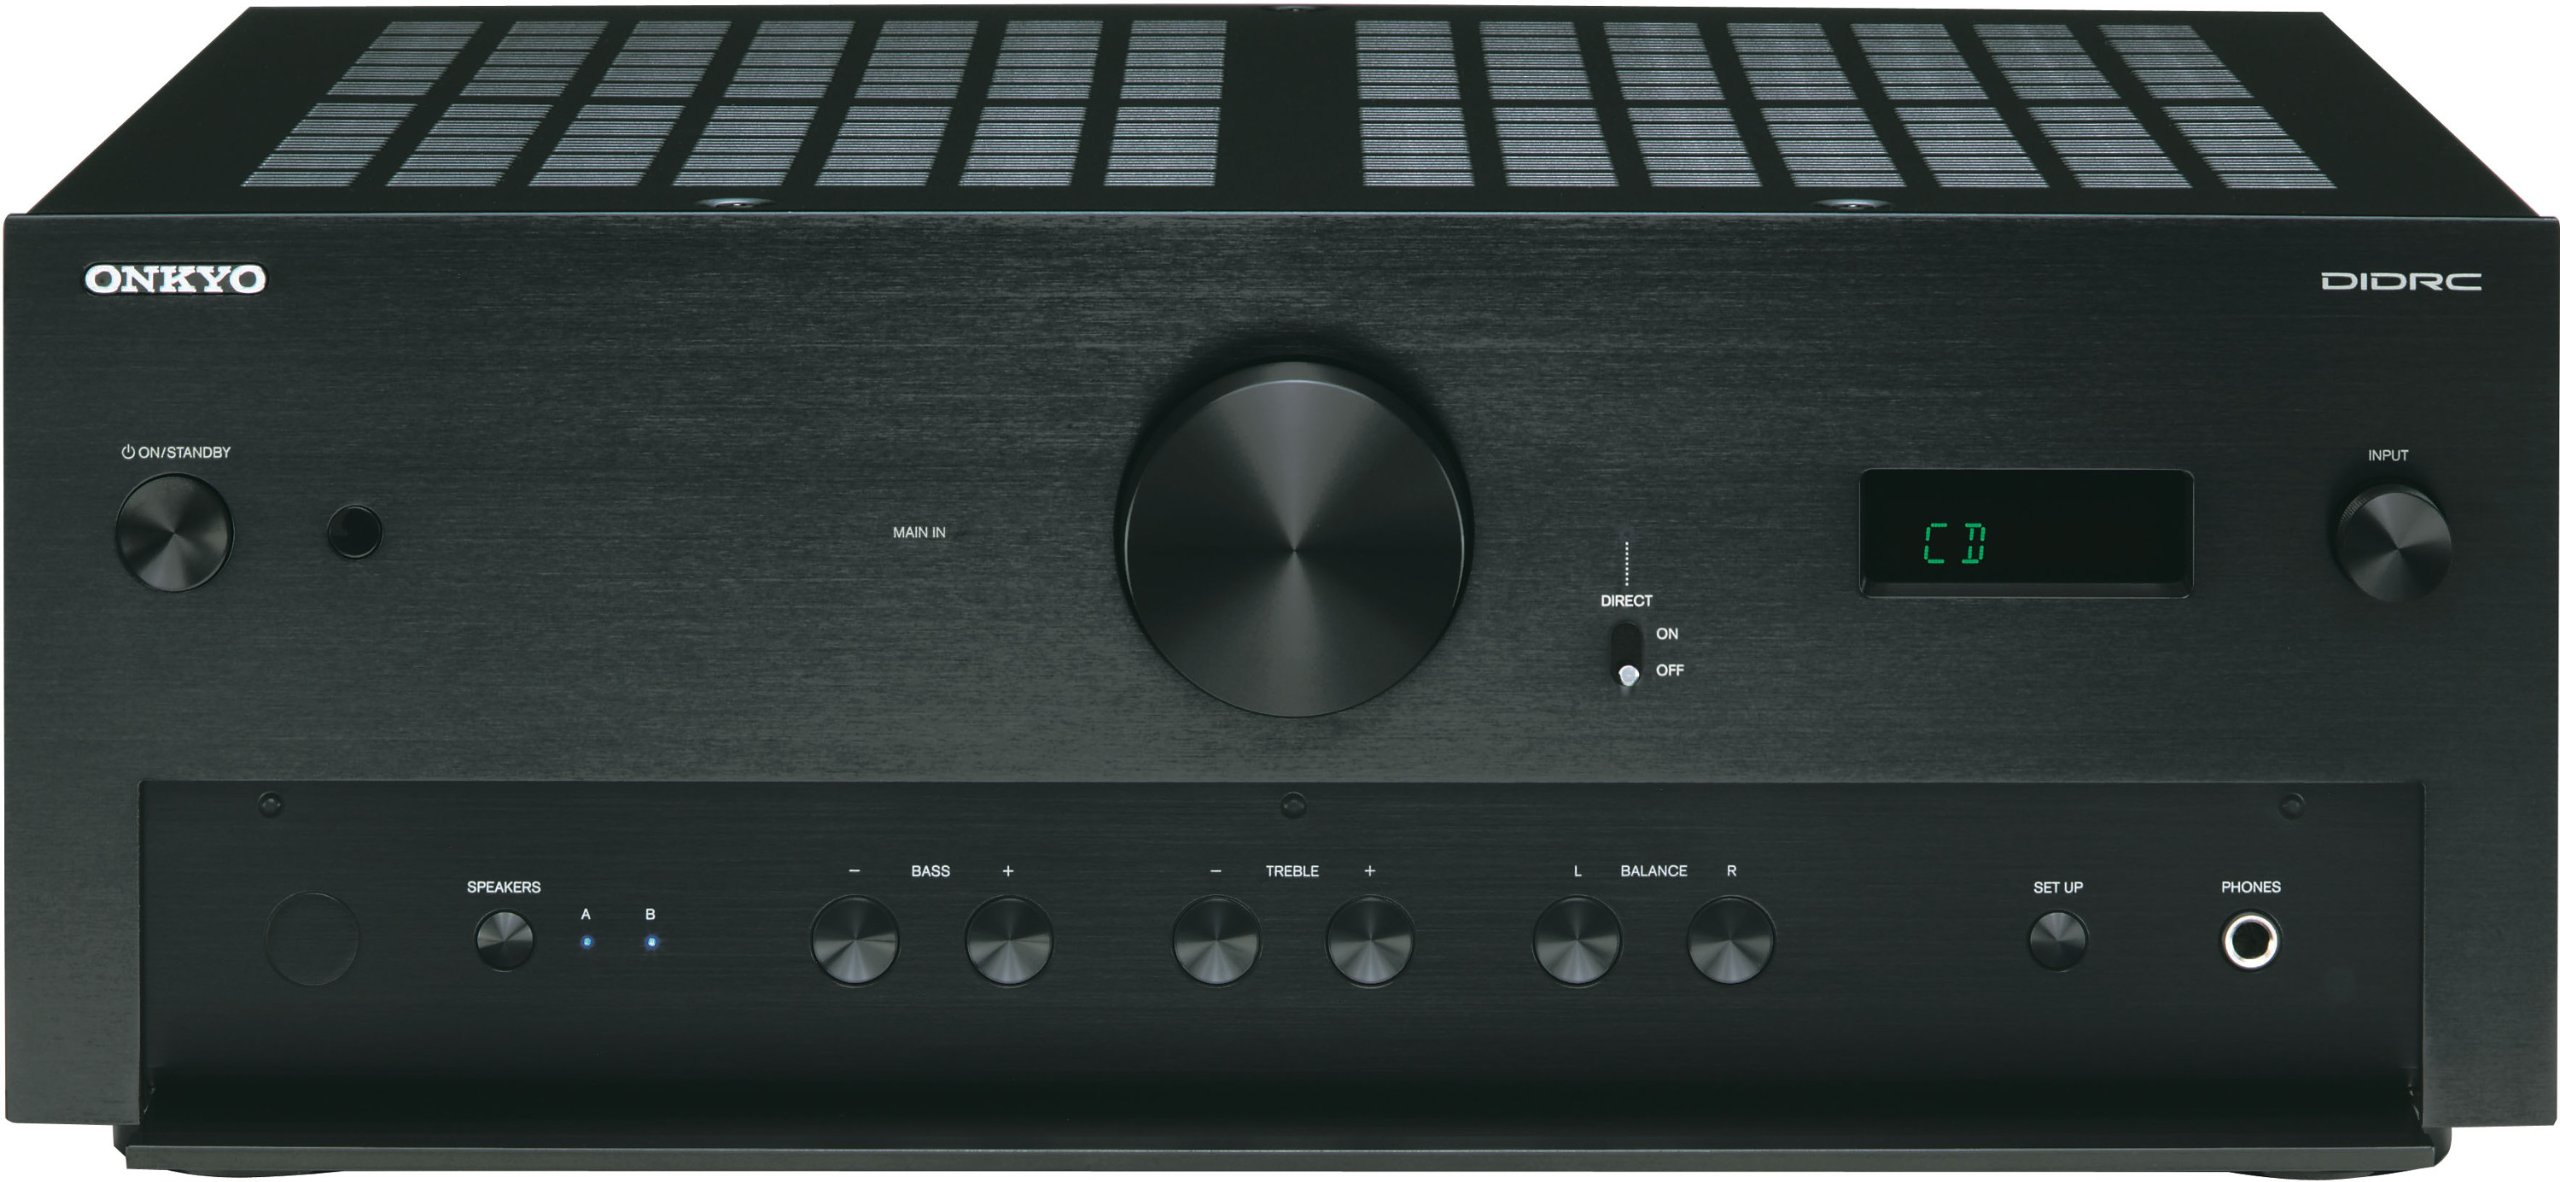 Onkyo A-9070 Stereo Integrated Amplifier by Onkyo